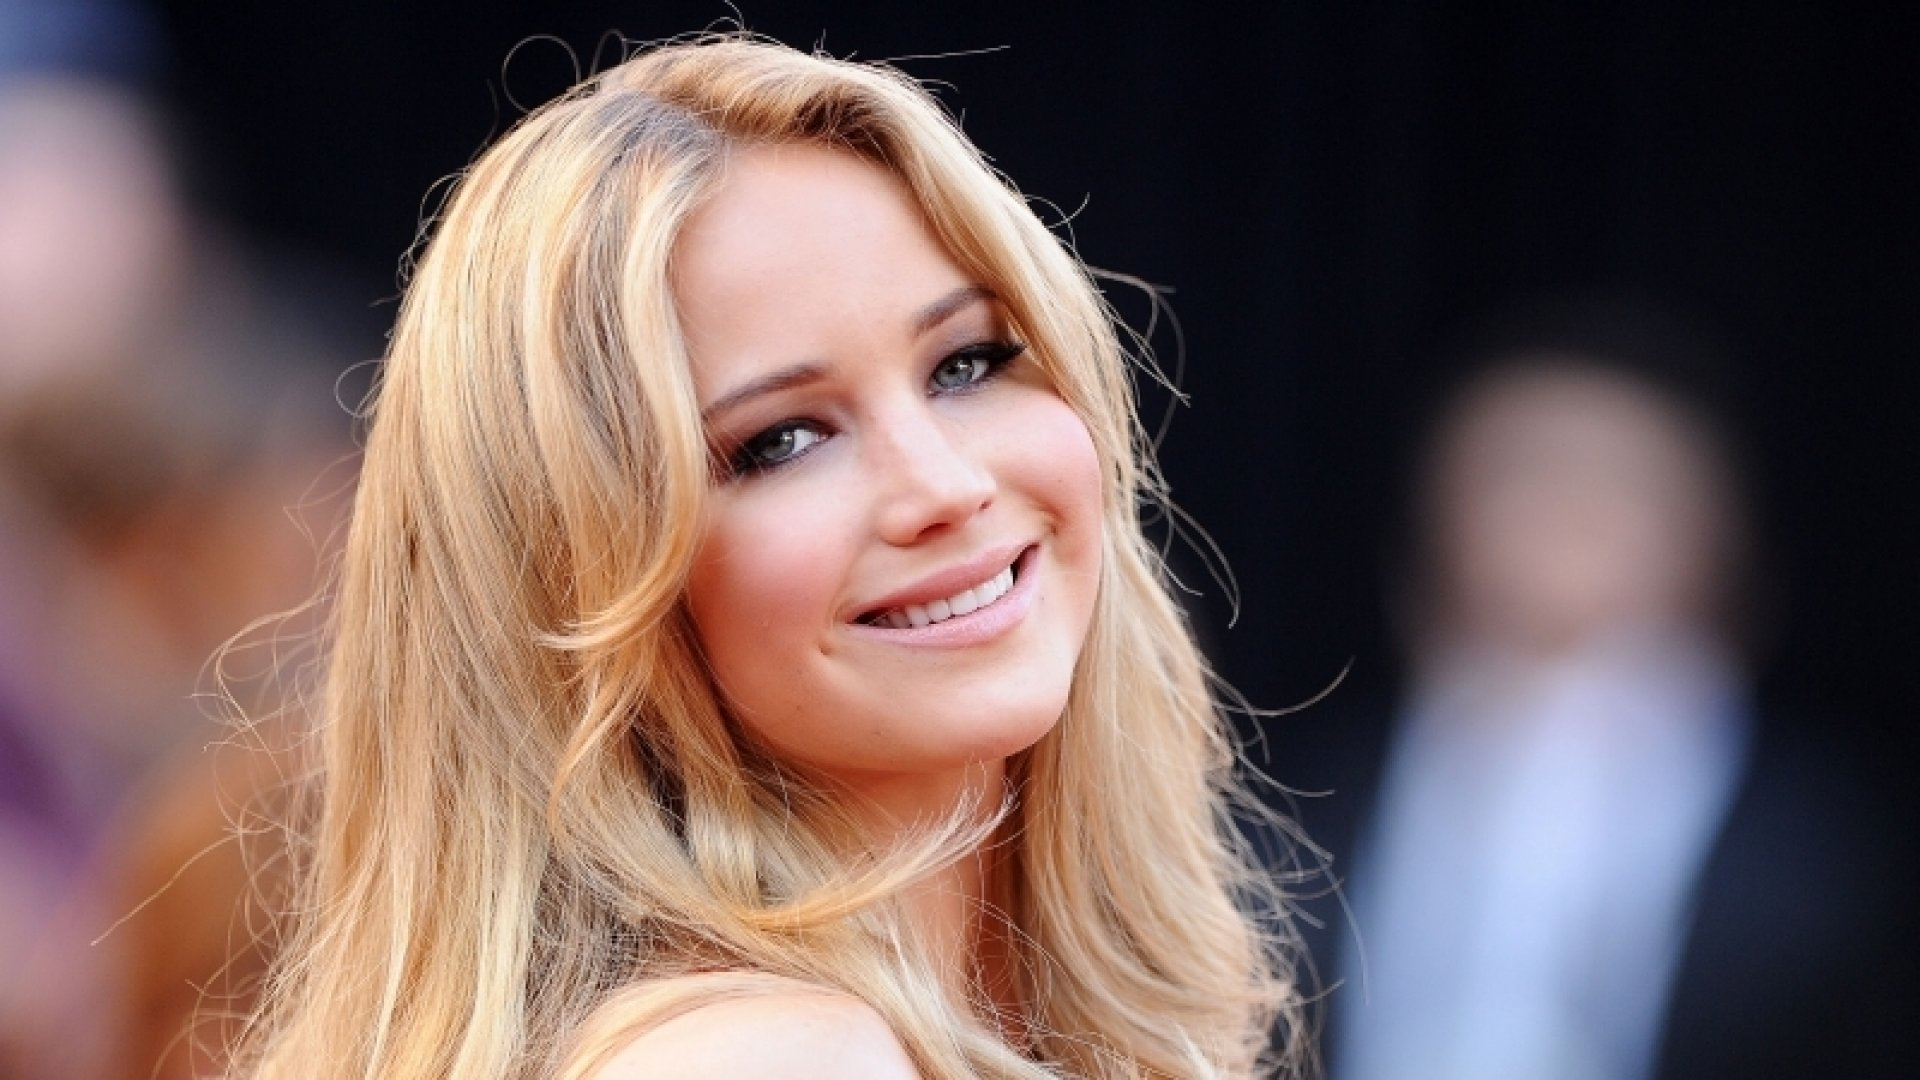 Misleading Profile Photos, Authenticity, and the Jennifer Lawrence Test